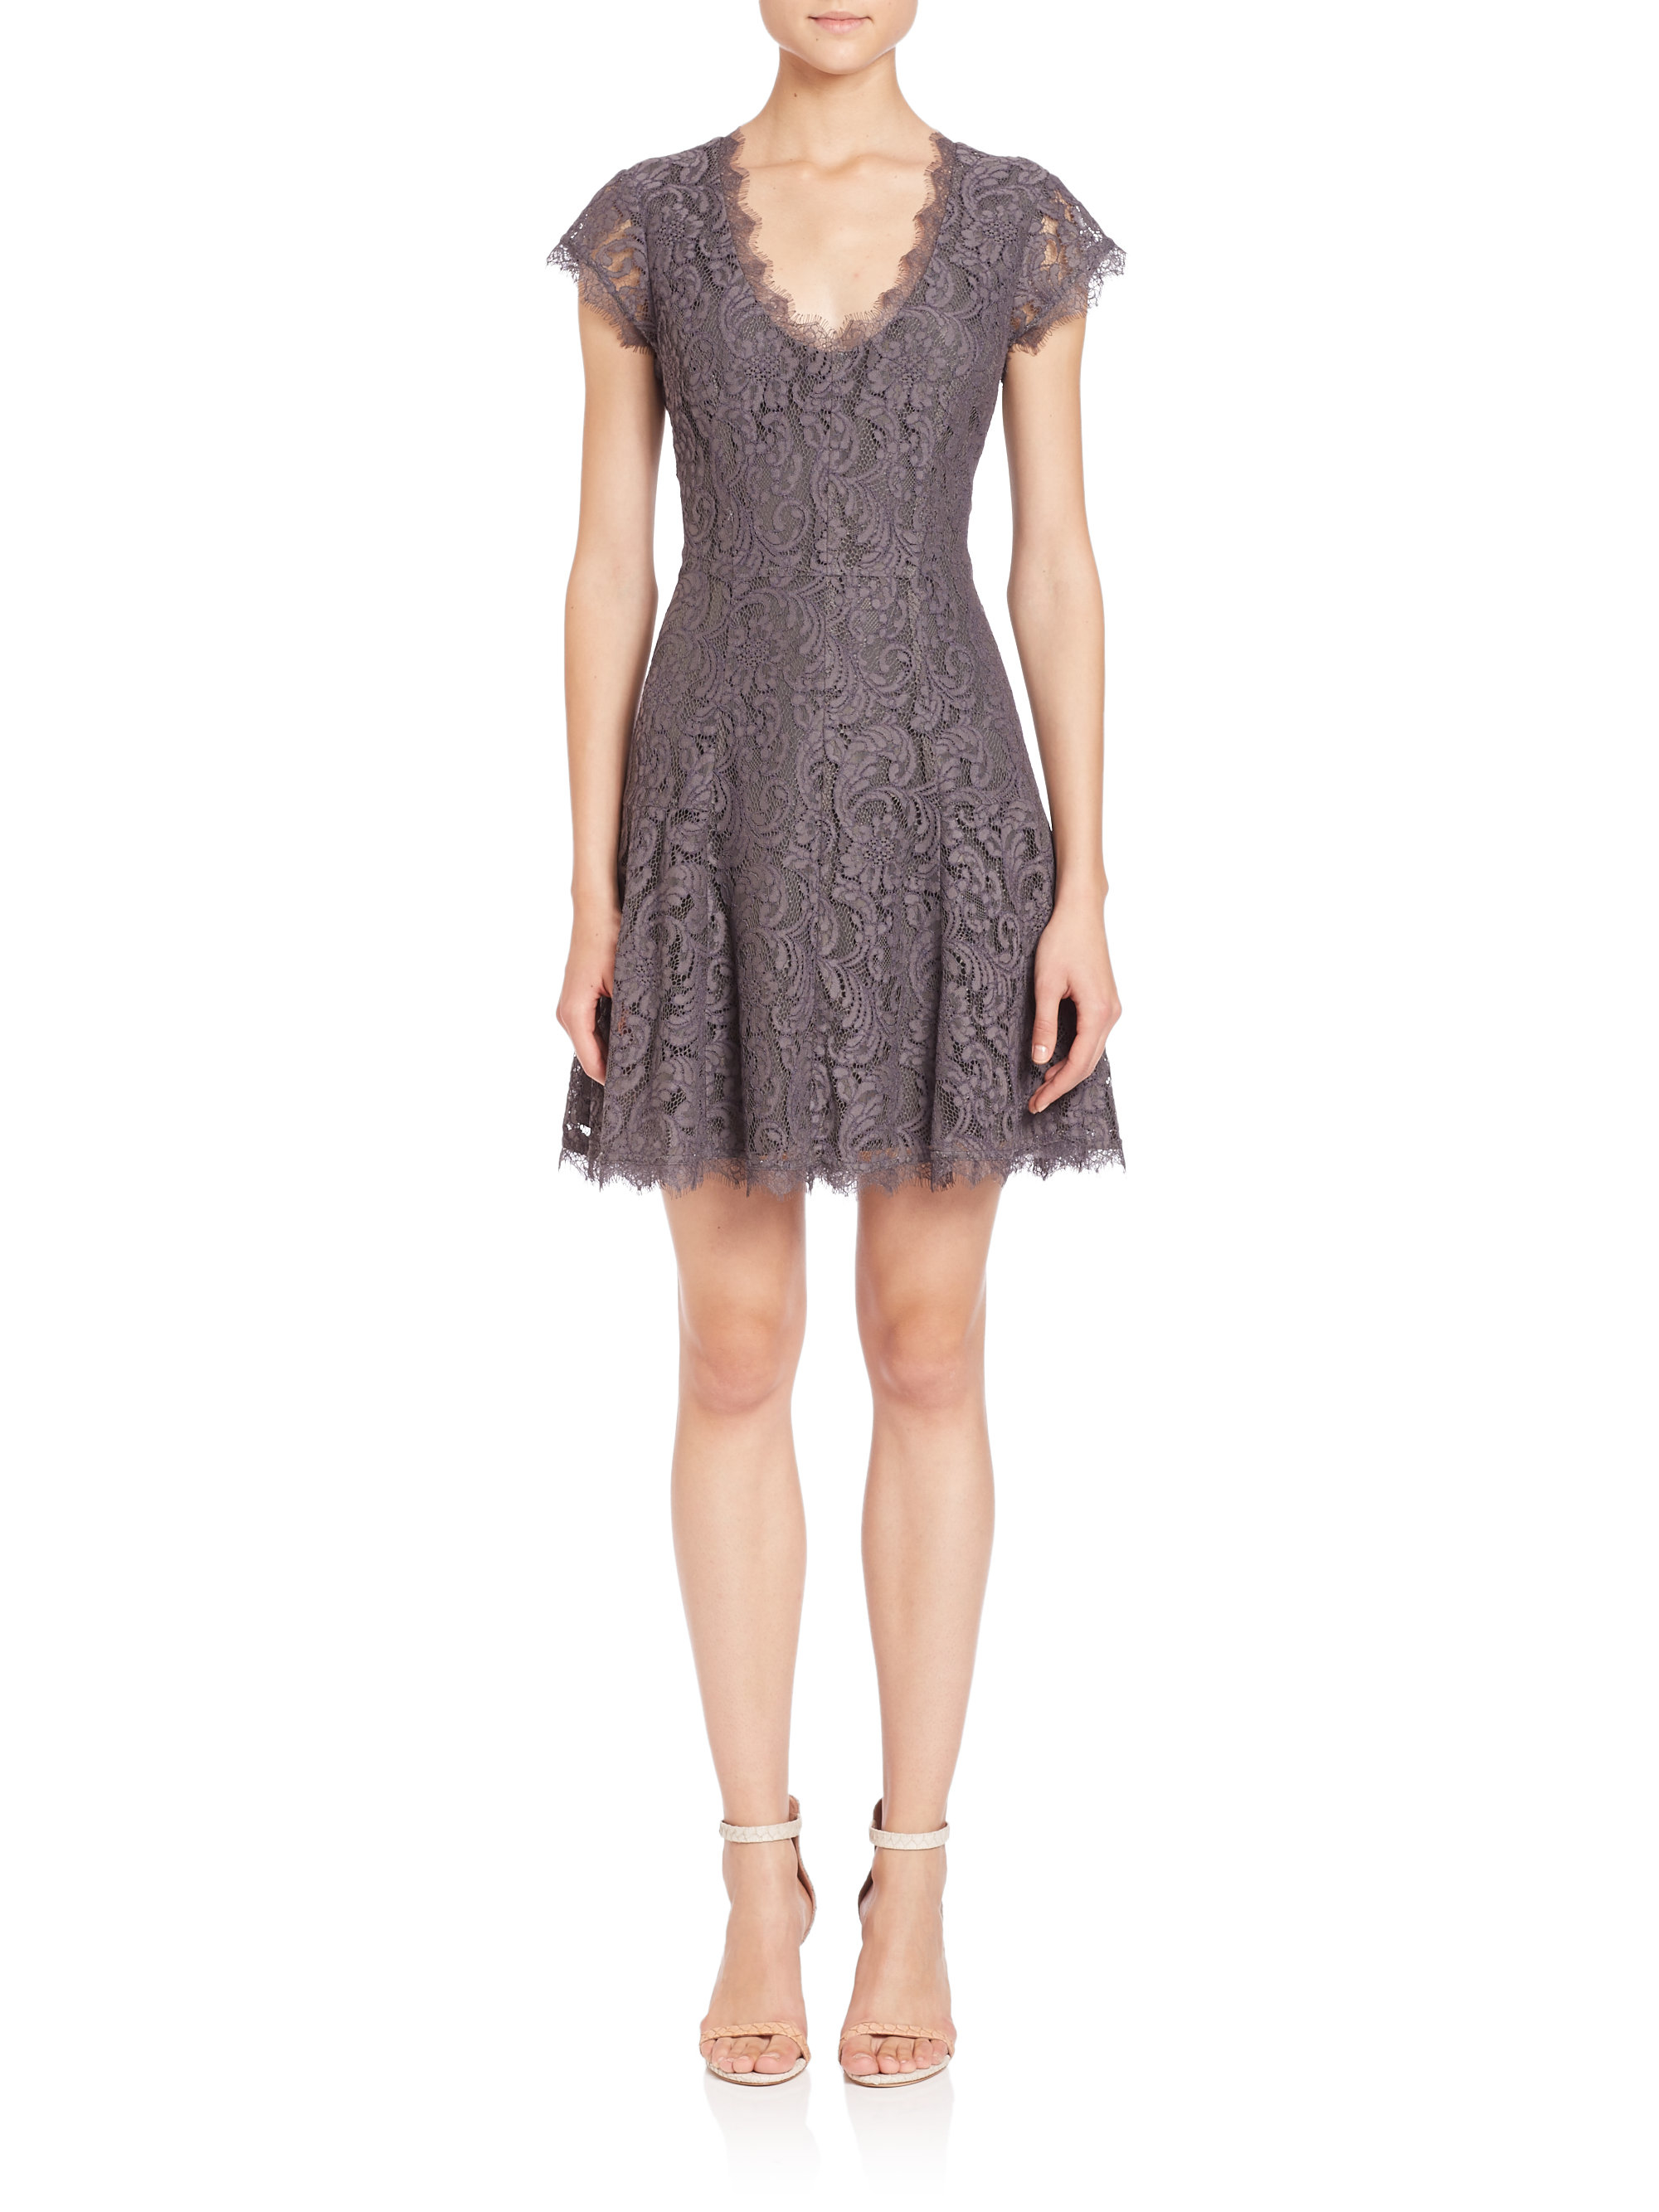 Joie Eshe Lace Fit Amp Flare Dress In Gray Lyst